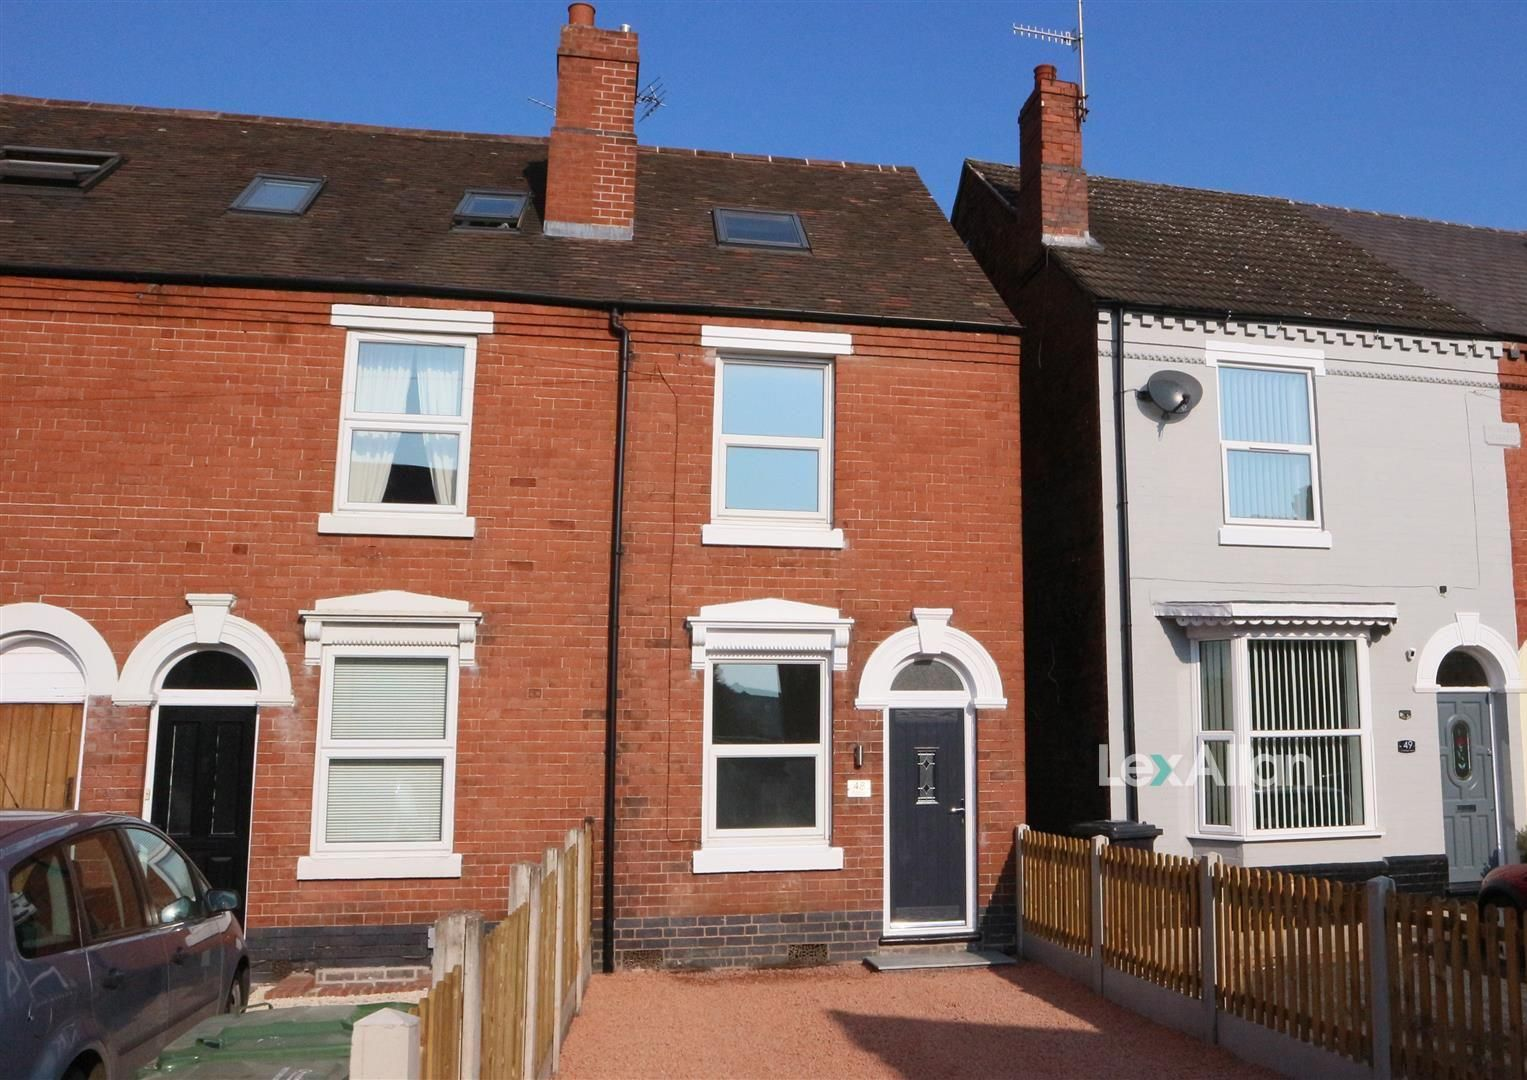 3 bed house for sale, DY10